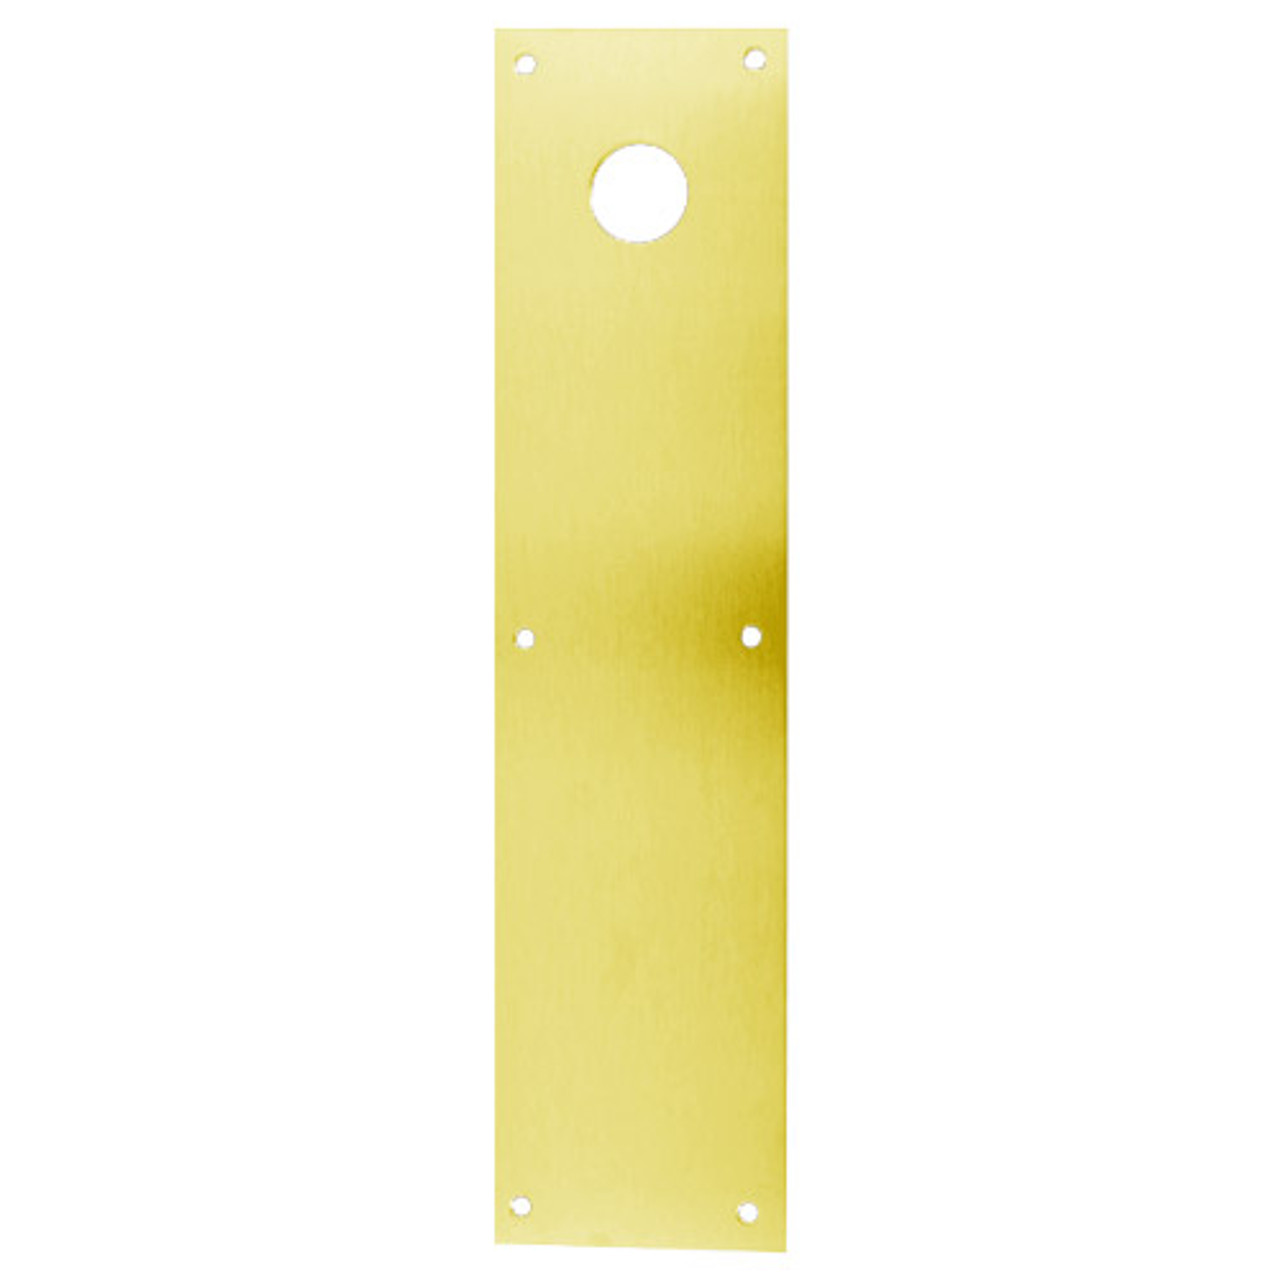 CFK71-605 Don Jo Push Plates with Holes in Bright Brass Finish